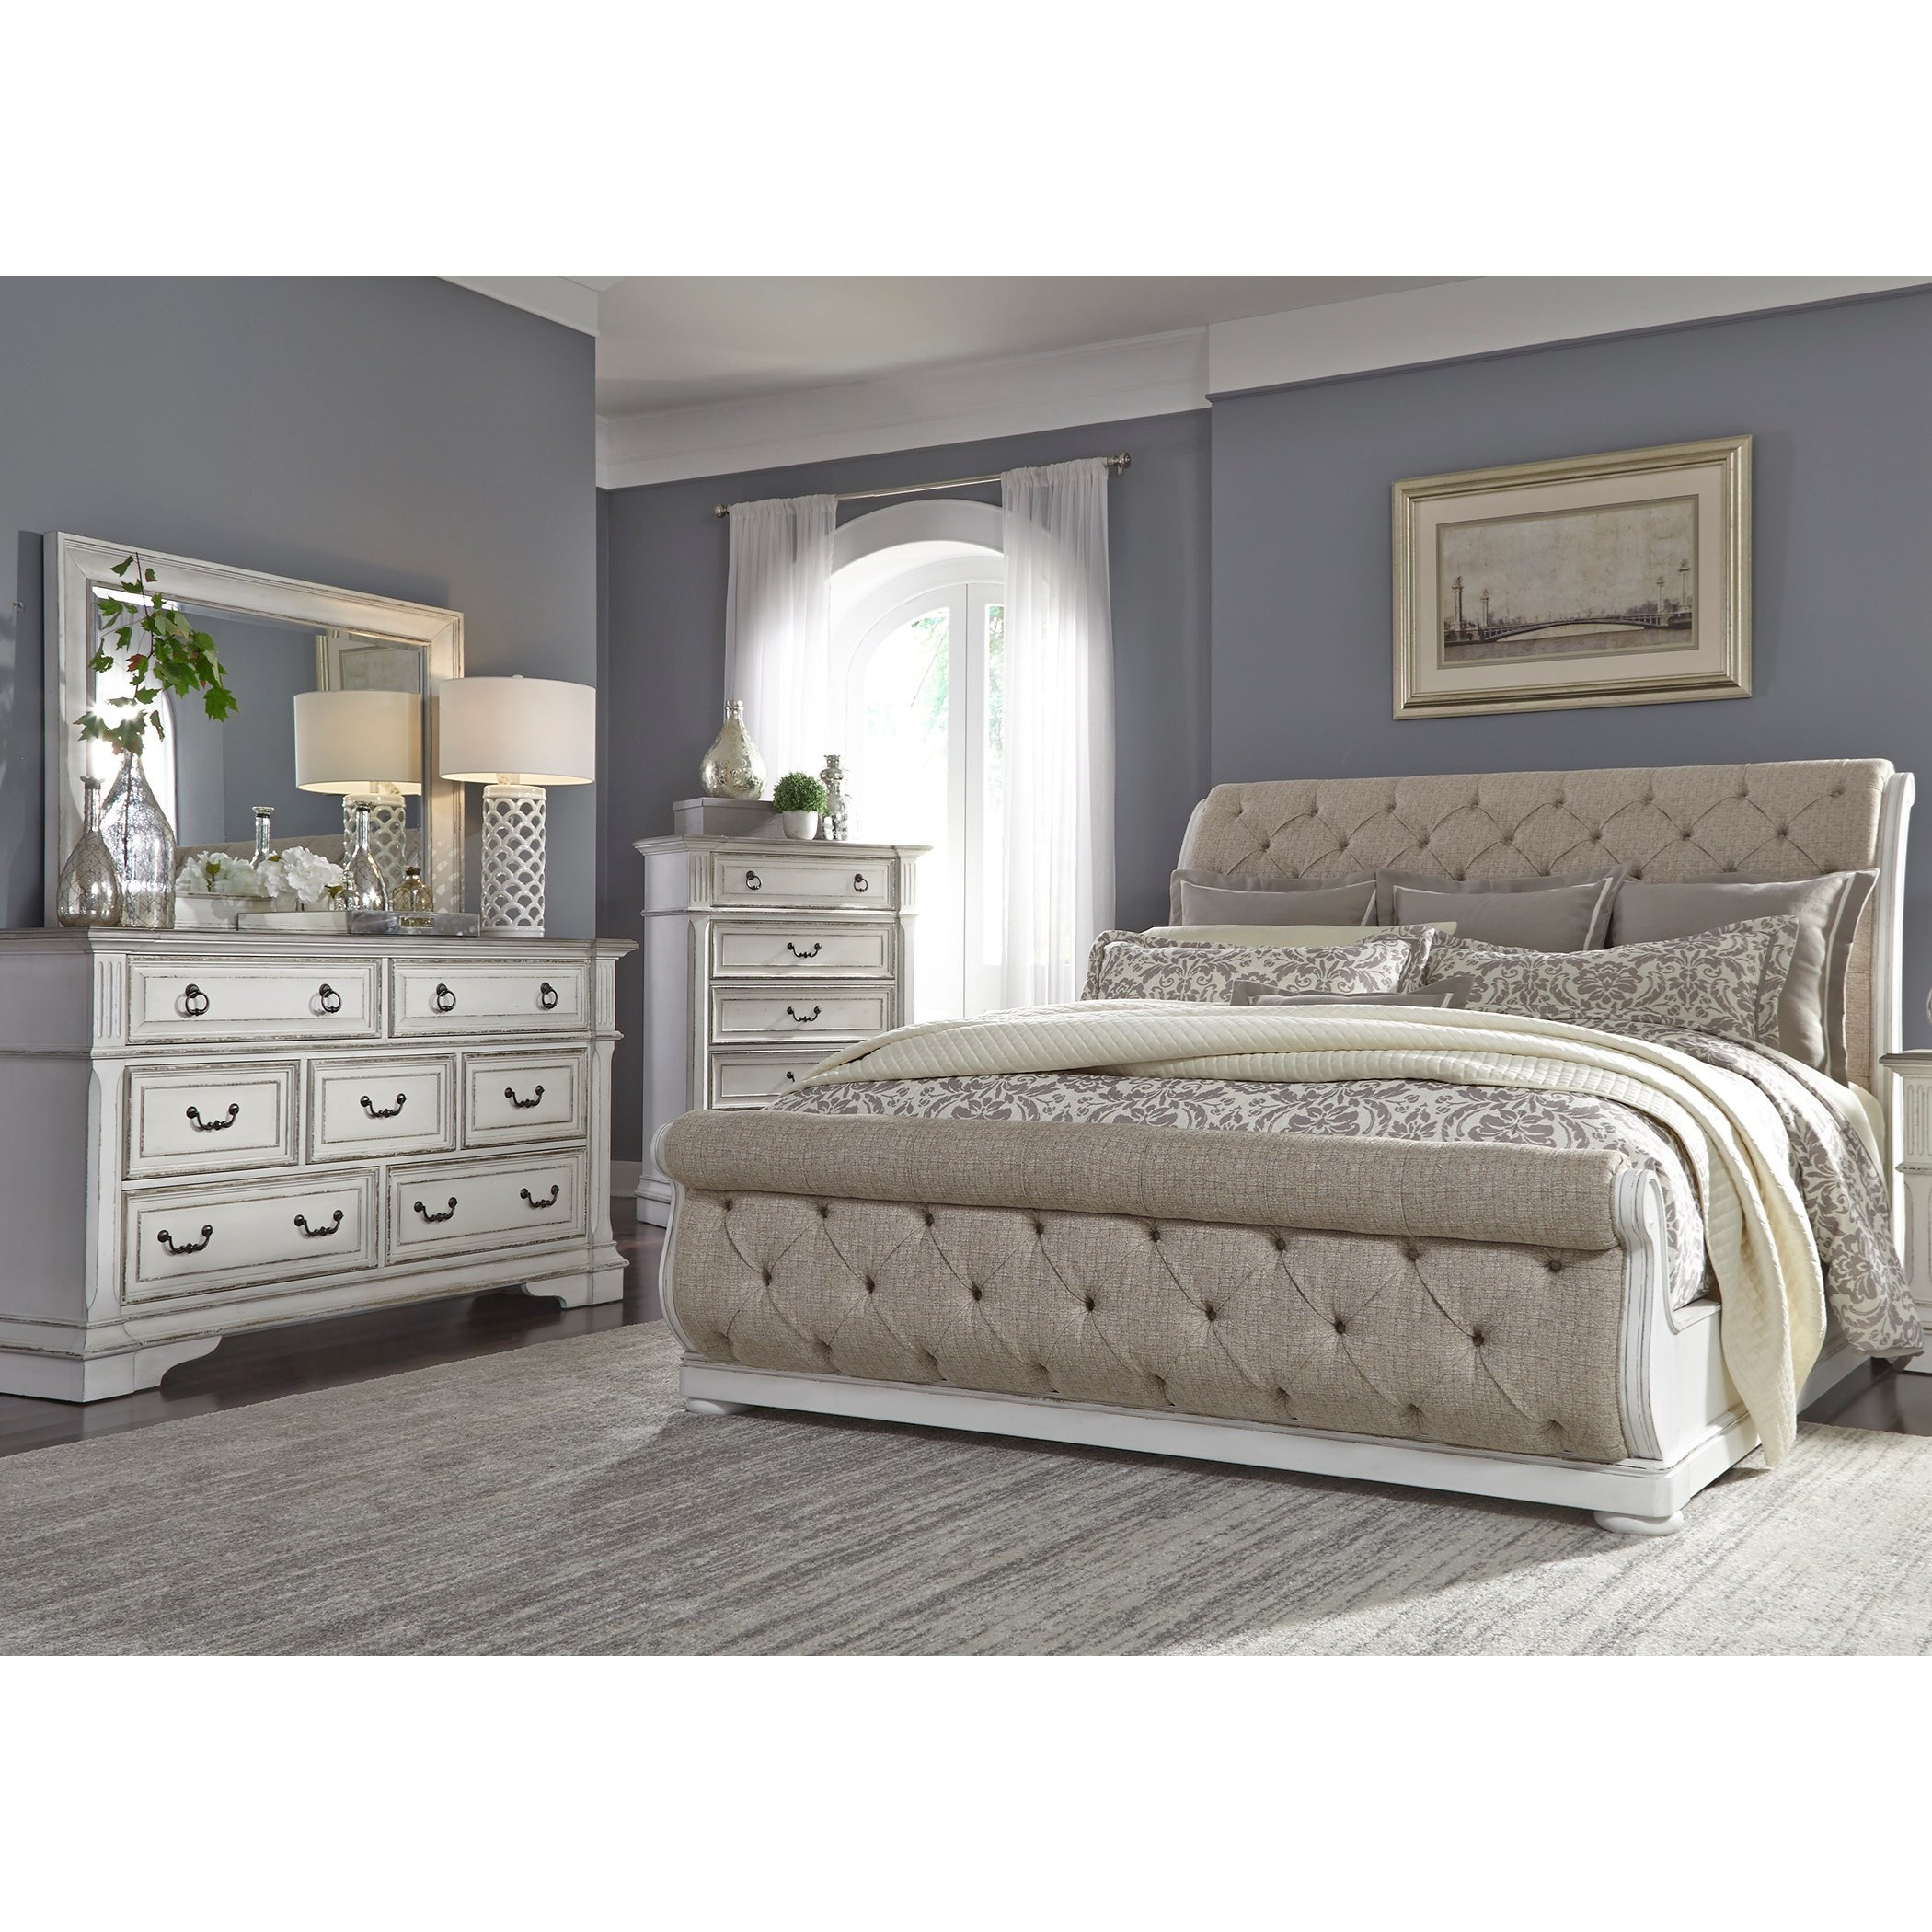 Abbey Park California King Bedroom Group by Liberty Furniture at Home Collections Furniture